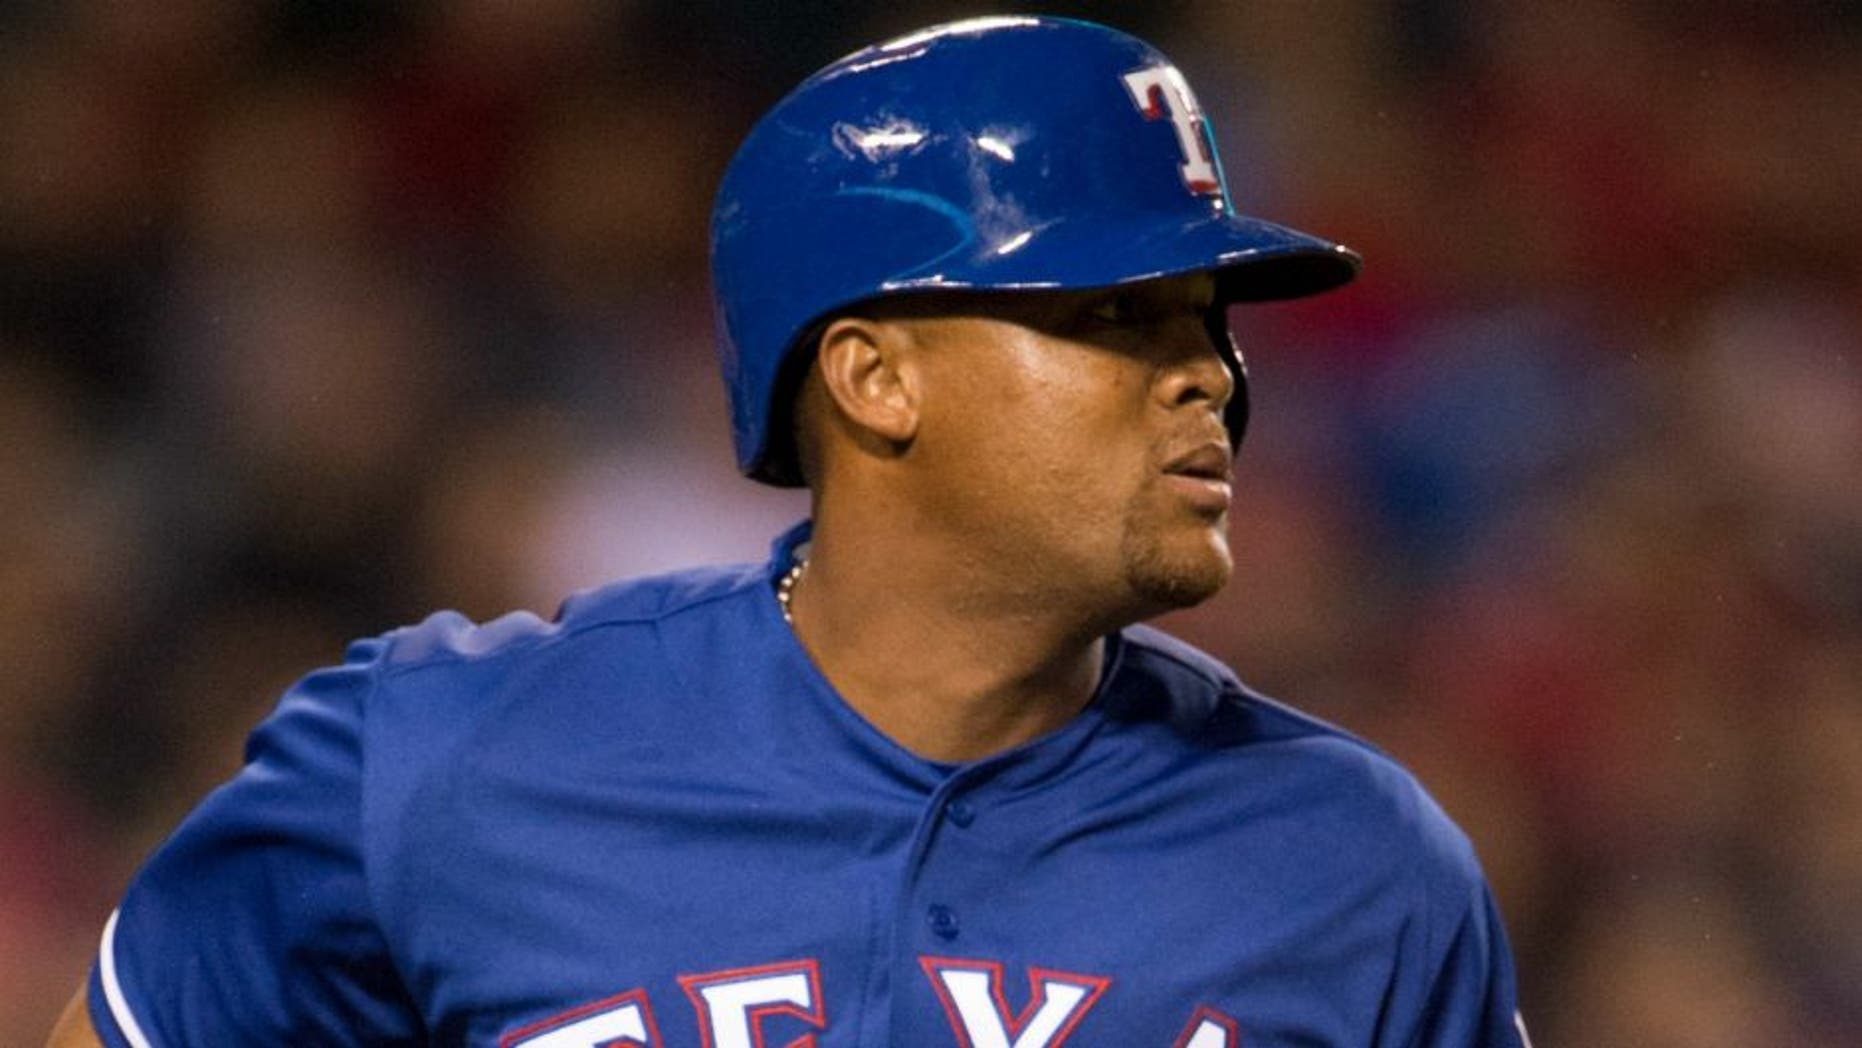 ANAHEIM, CA - APRIL 7: Adrian Beltre #29 of the Texas Rangers runs during the game against the Los Angeles Angels of Anaheim at Angel Stadium of Anaheim on April 7, 2016 in Anaheim, California. (Photo by Matt Brown/Angels Baseball LP/Getty Images)